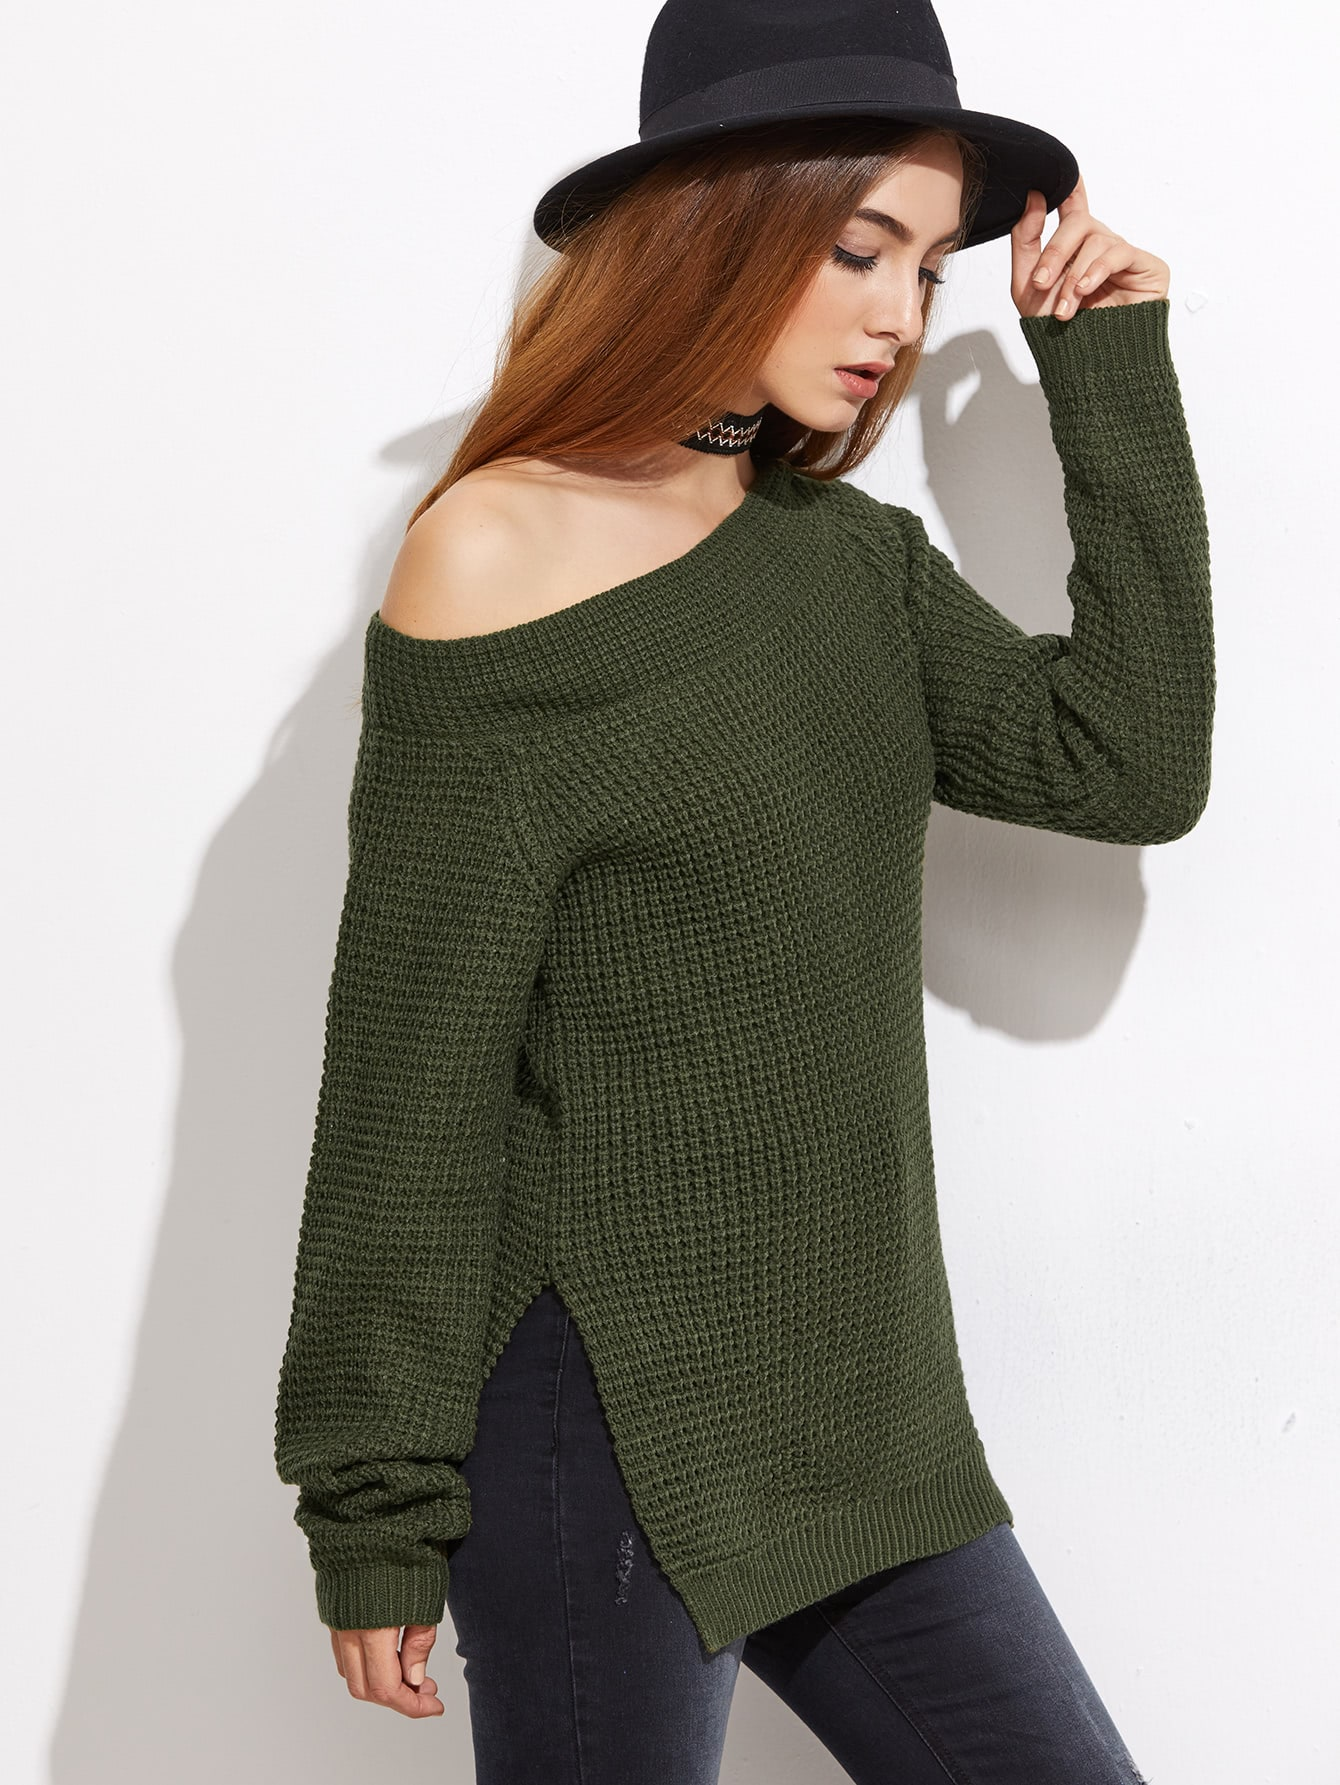 Olive Green Waffle Knit Asymmetric Off The Shoulder Sweater -SheIn ...